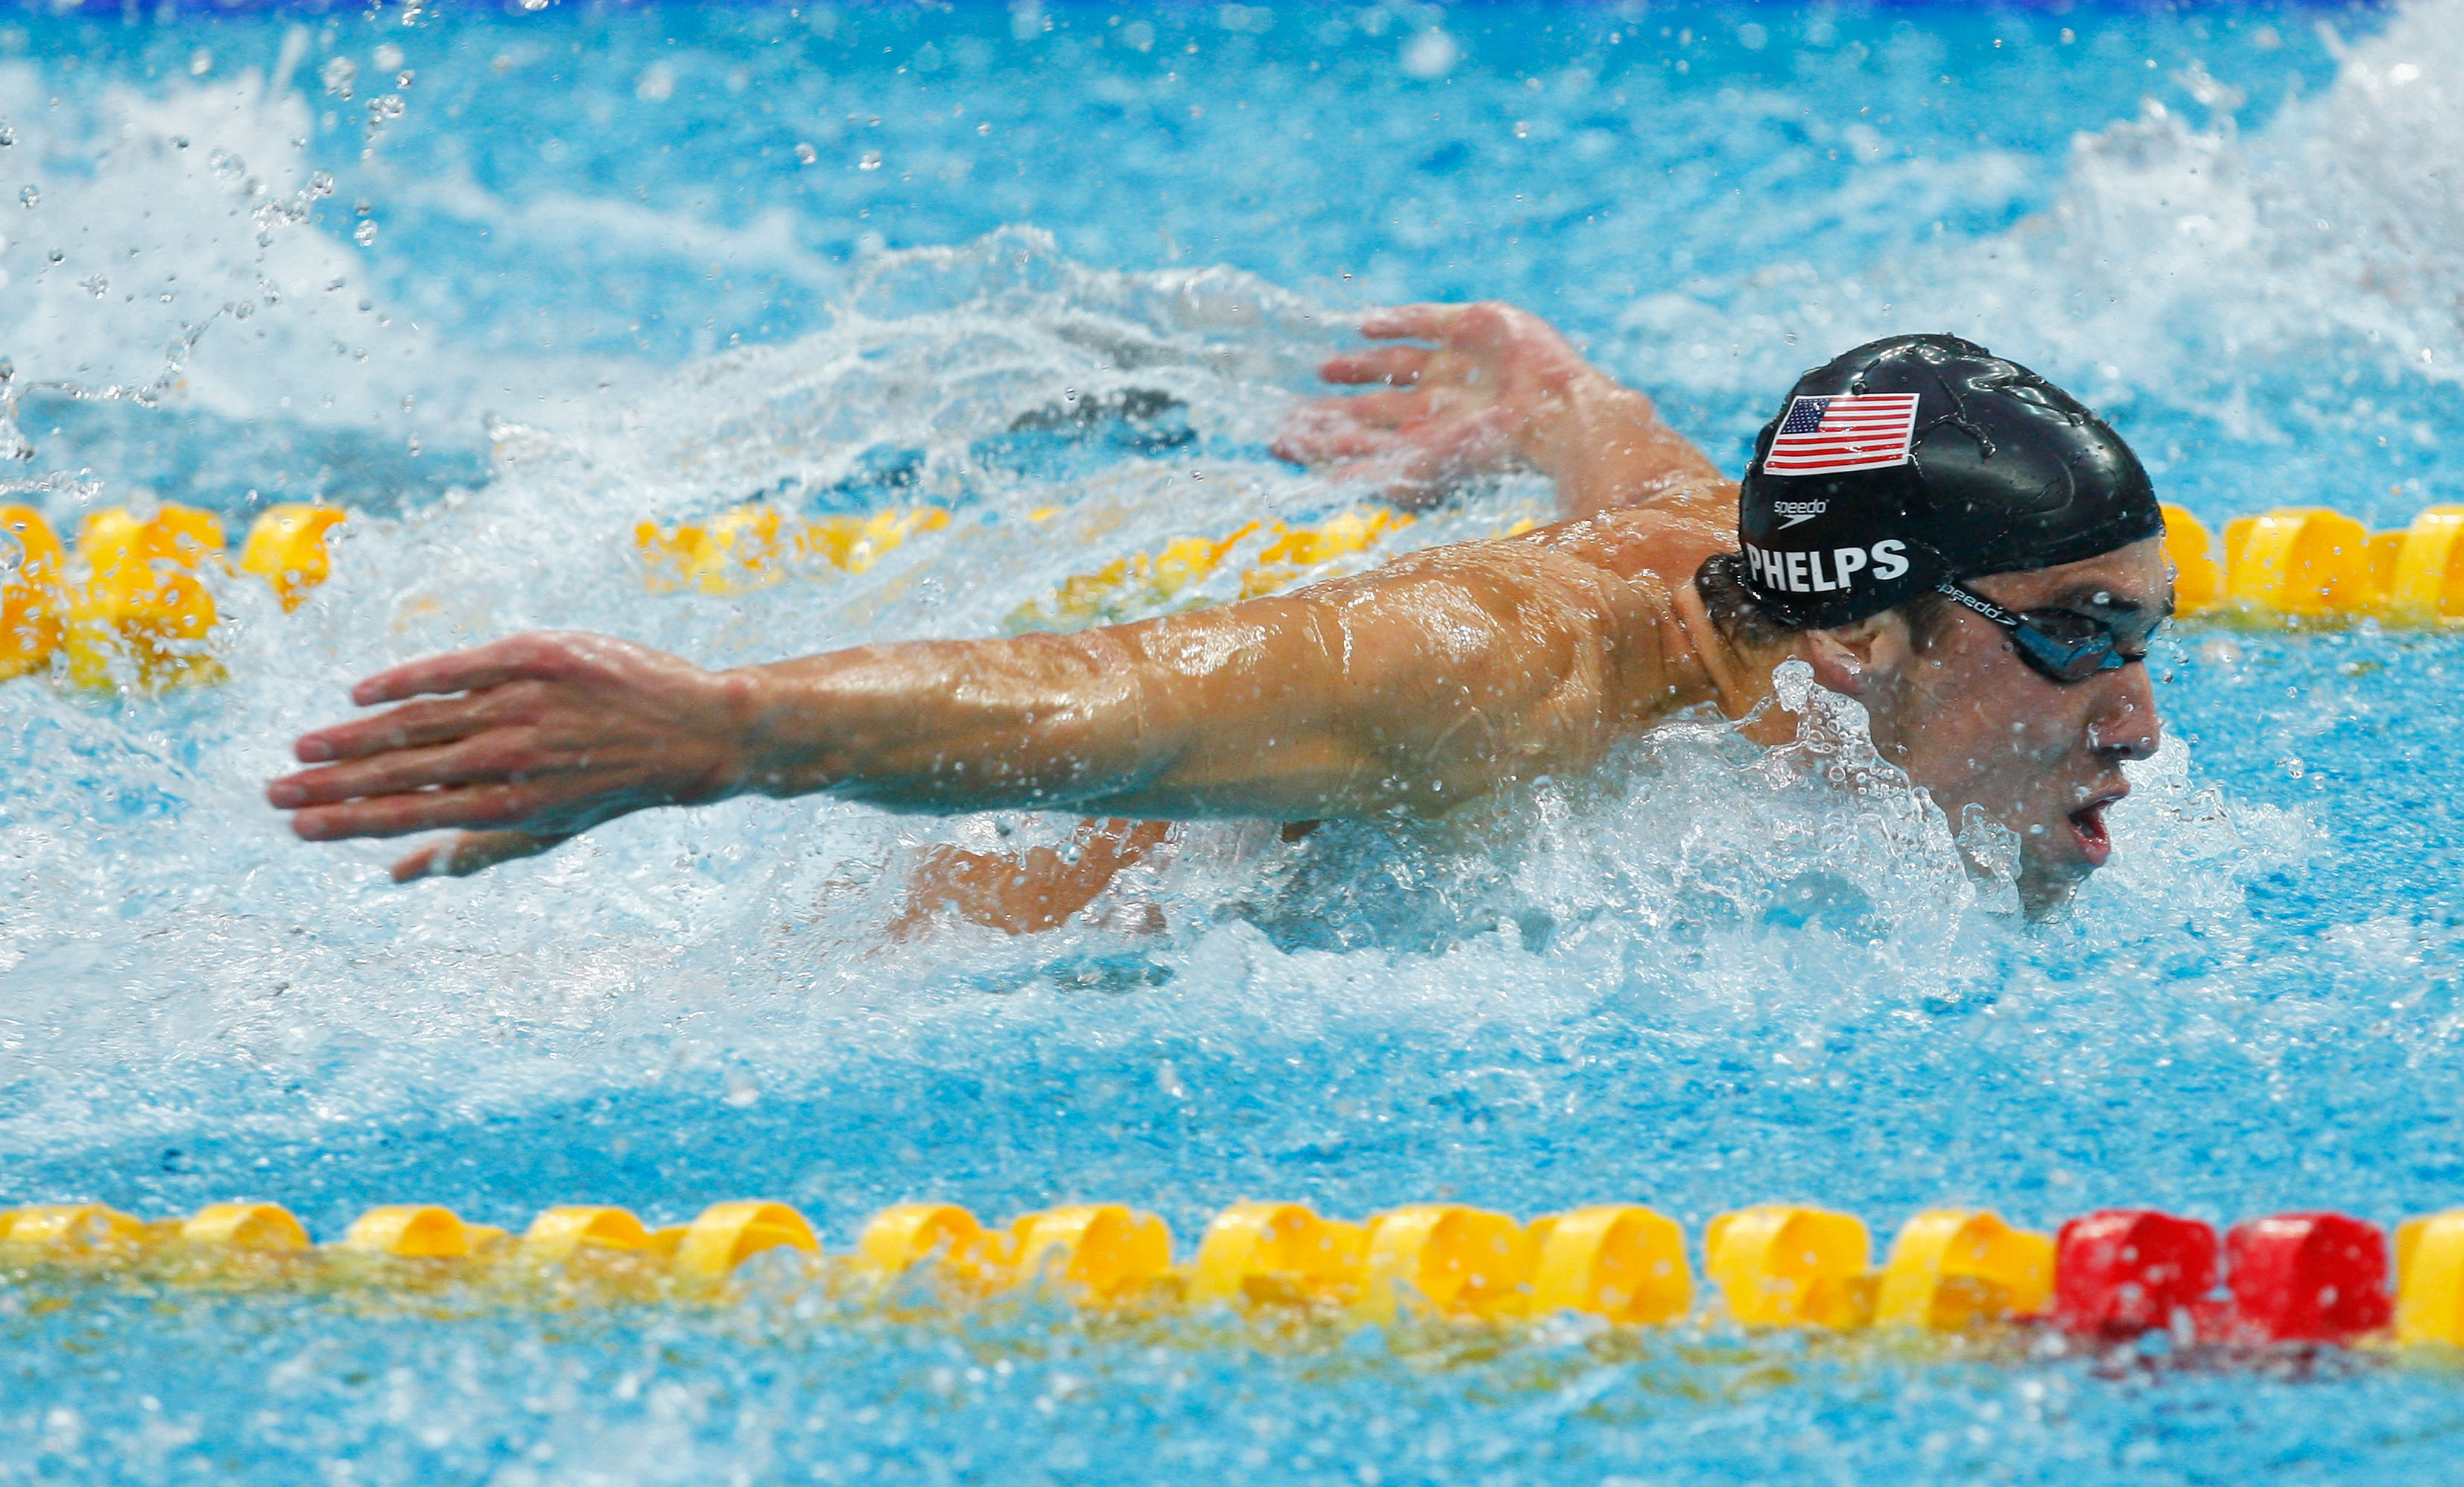 Michael Phelps of the Unites States competes in the butterfly leg of the Men's 4x100 Medley Relay held at the National Aquatics Centre during Day 9 of the Beijing 2008 Olympic Games on August 17, 2008 in Beijing, China.